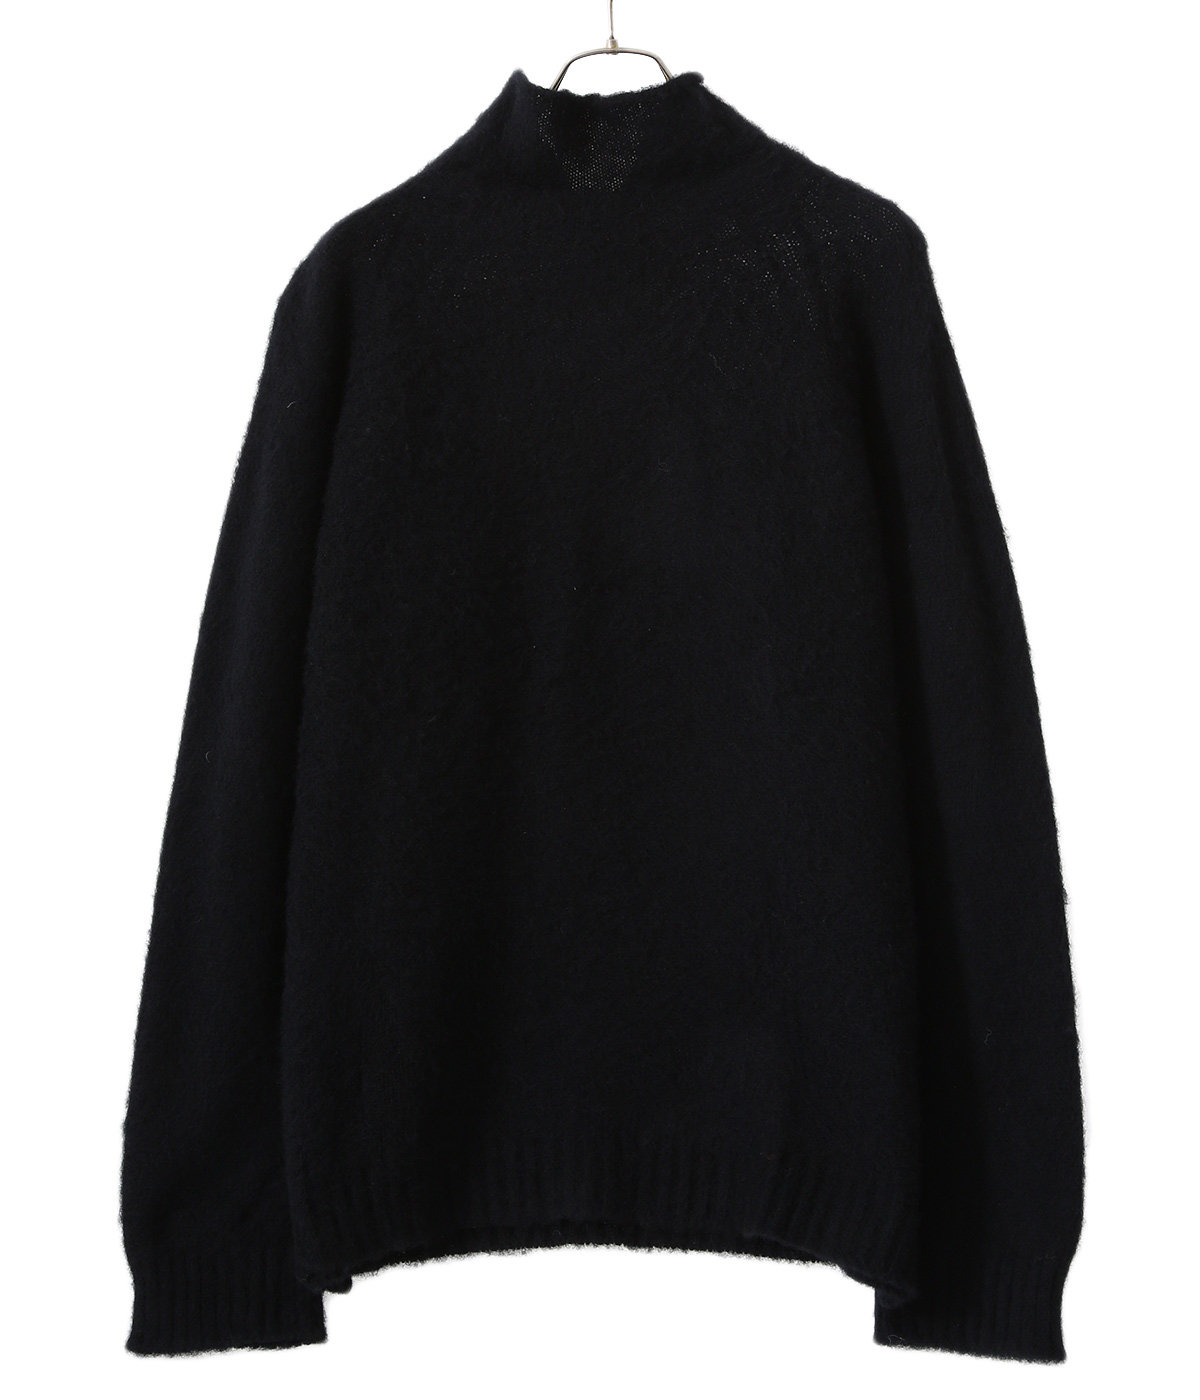 SIDE SEAM WIDE TURTLE NECK SWEATER